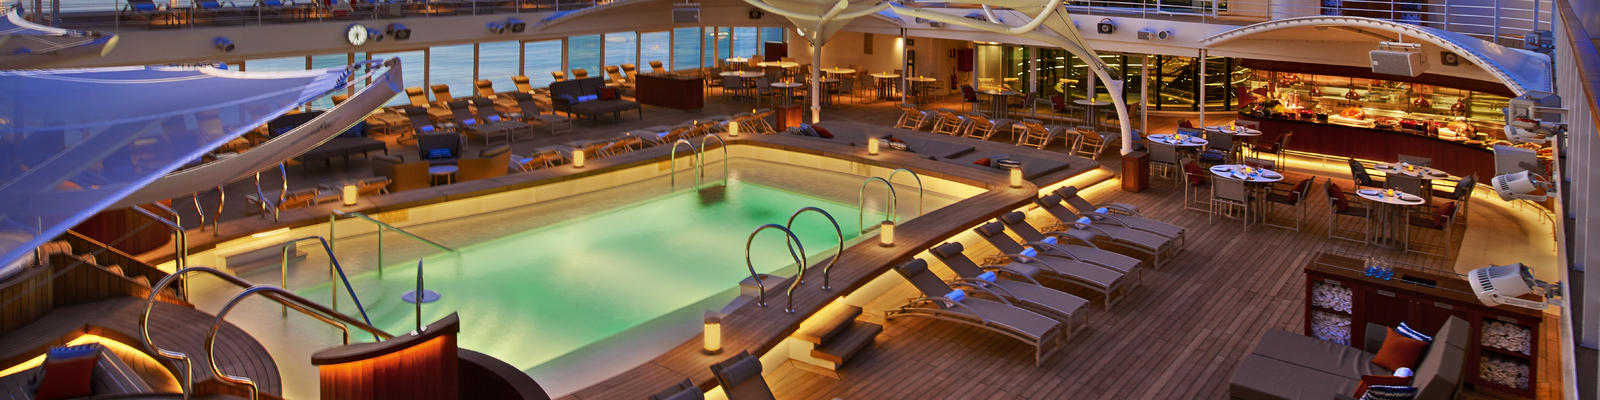 The pool deck on Seabourn Encore (Photo: Seabourn Cruises)